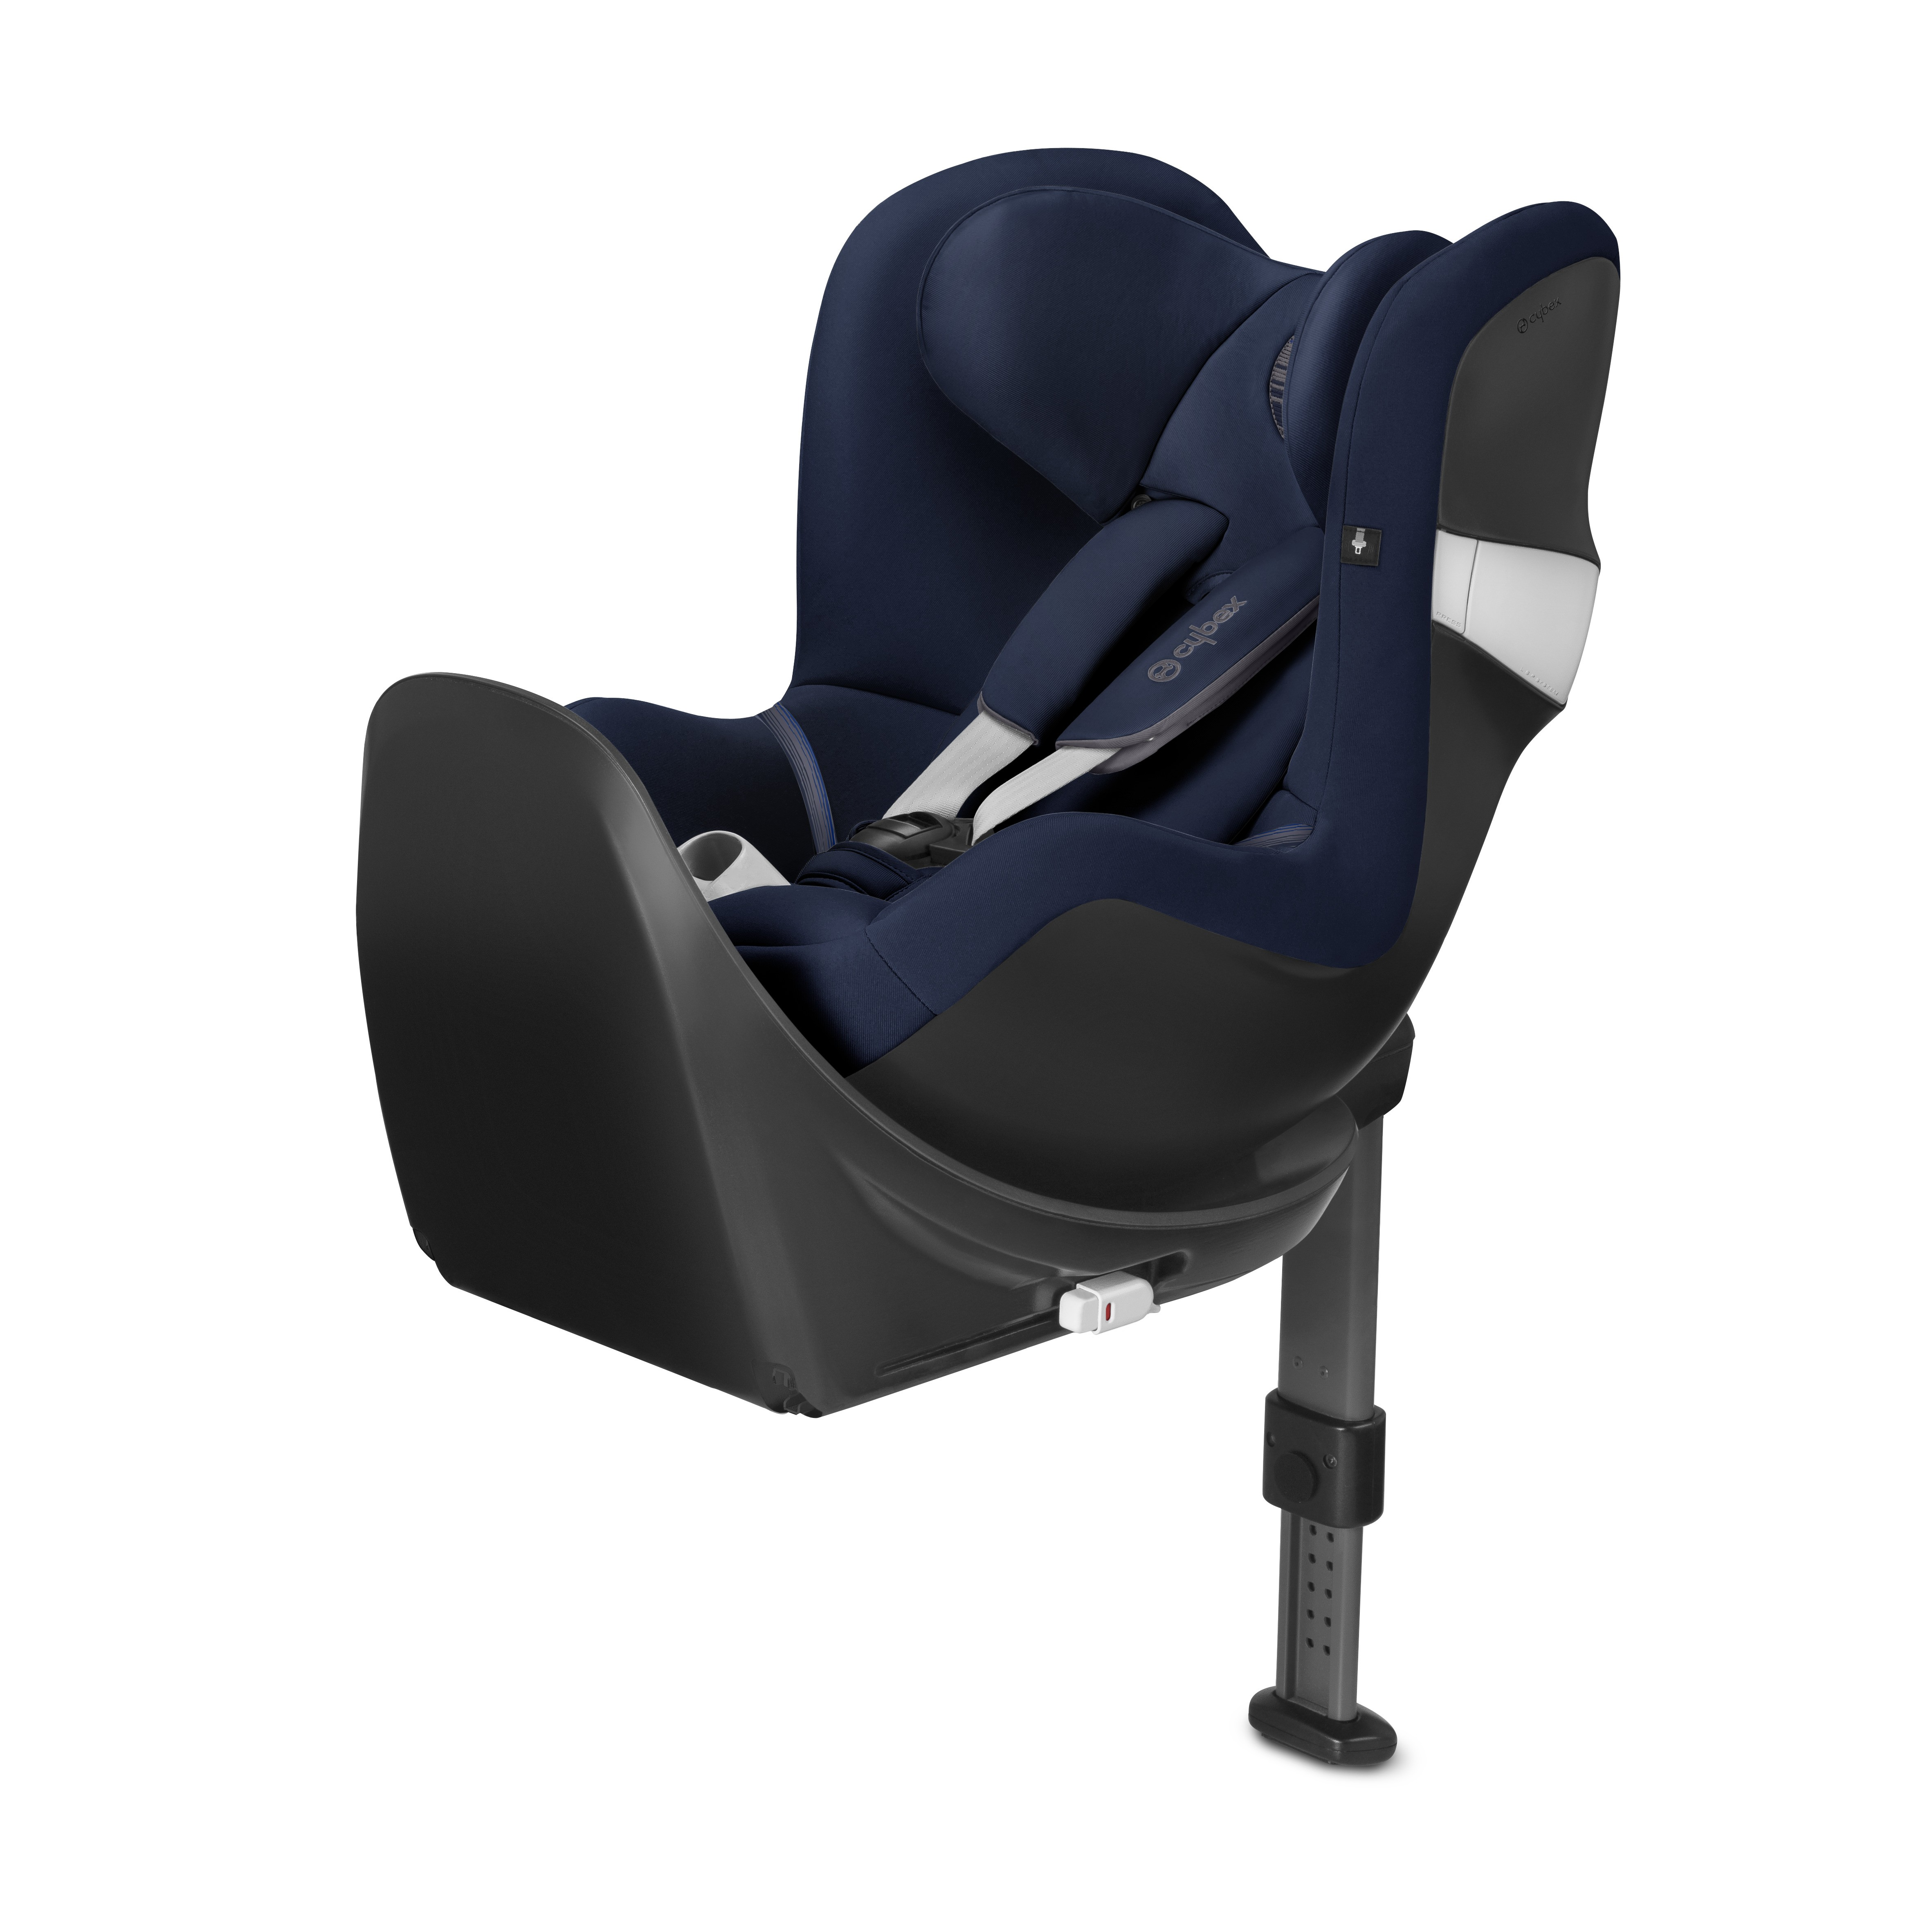 Автокресло Cybex Sirona M2 i-Size и база Base M Denim Blue, цвет темно-синий (996958129)